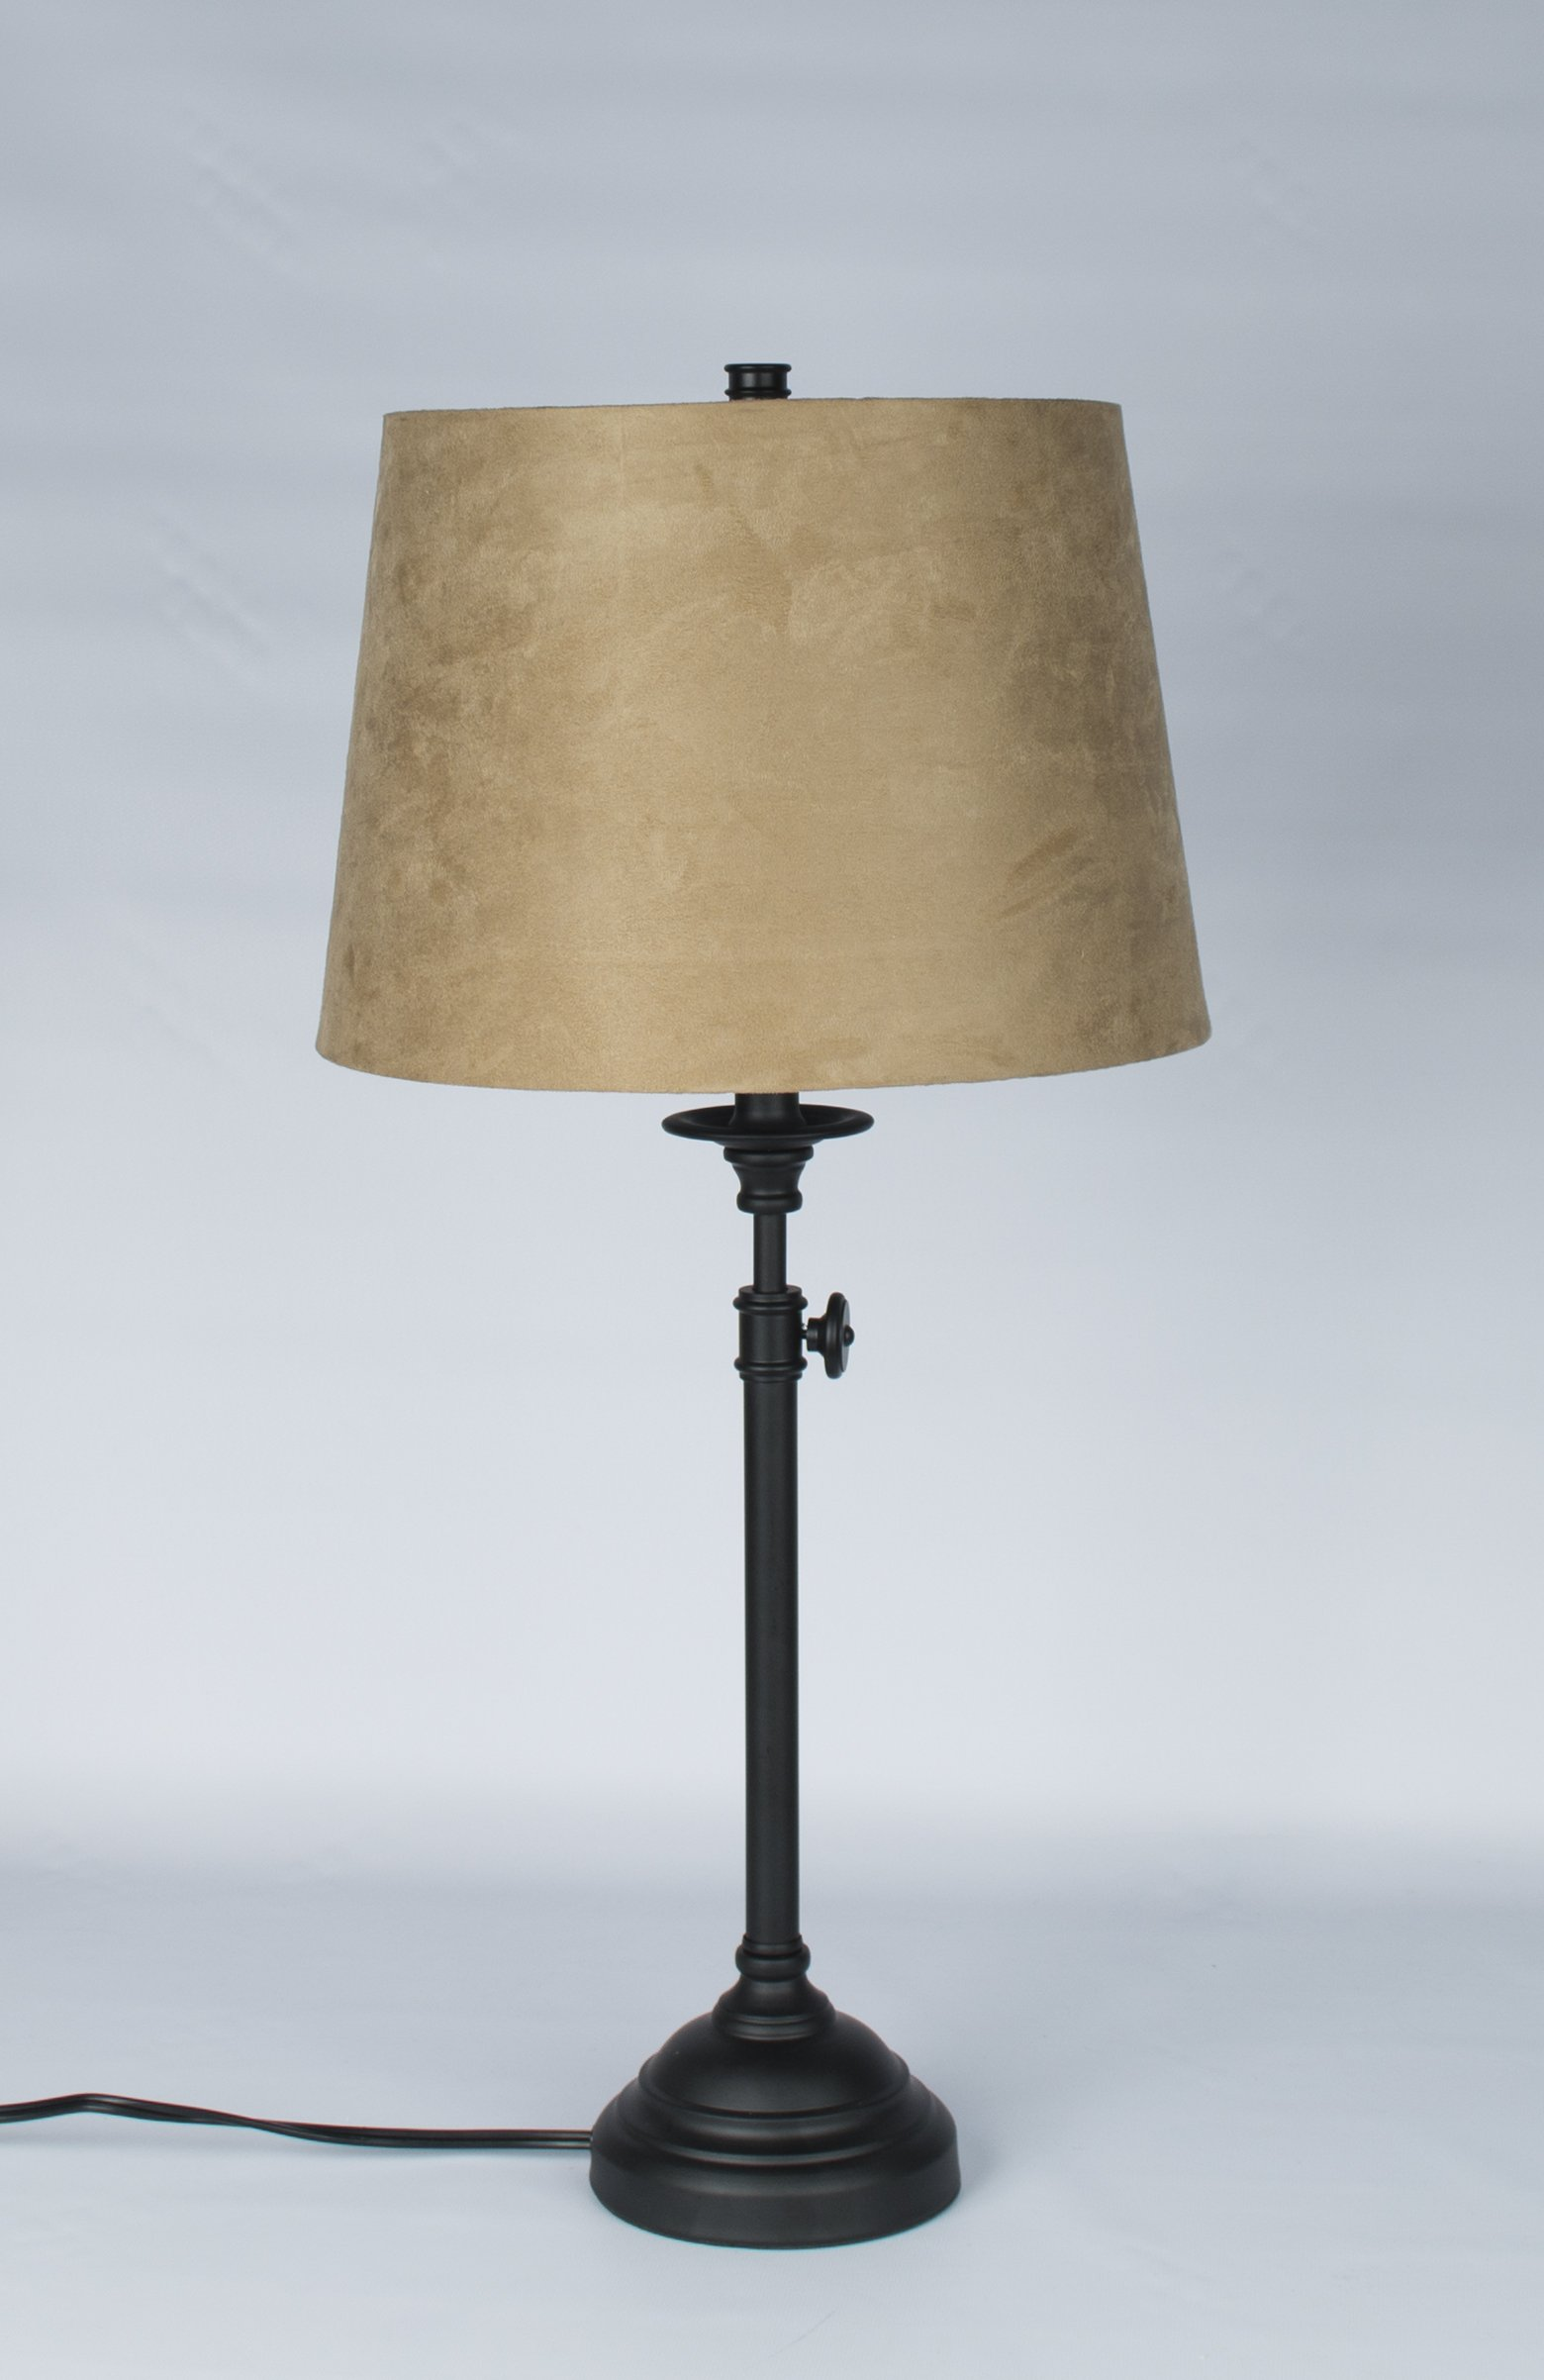 Urbanest Windsor Adjustable Accent Lamp, Matte Black Finish Lamp Base with Tan Suede Lampshade